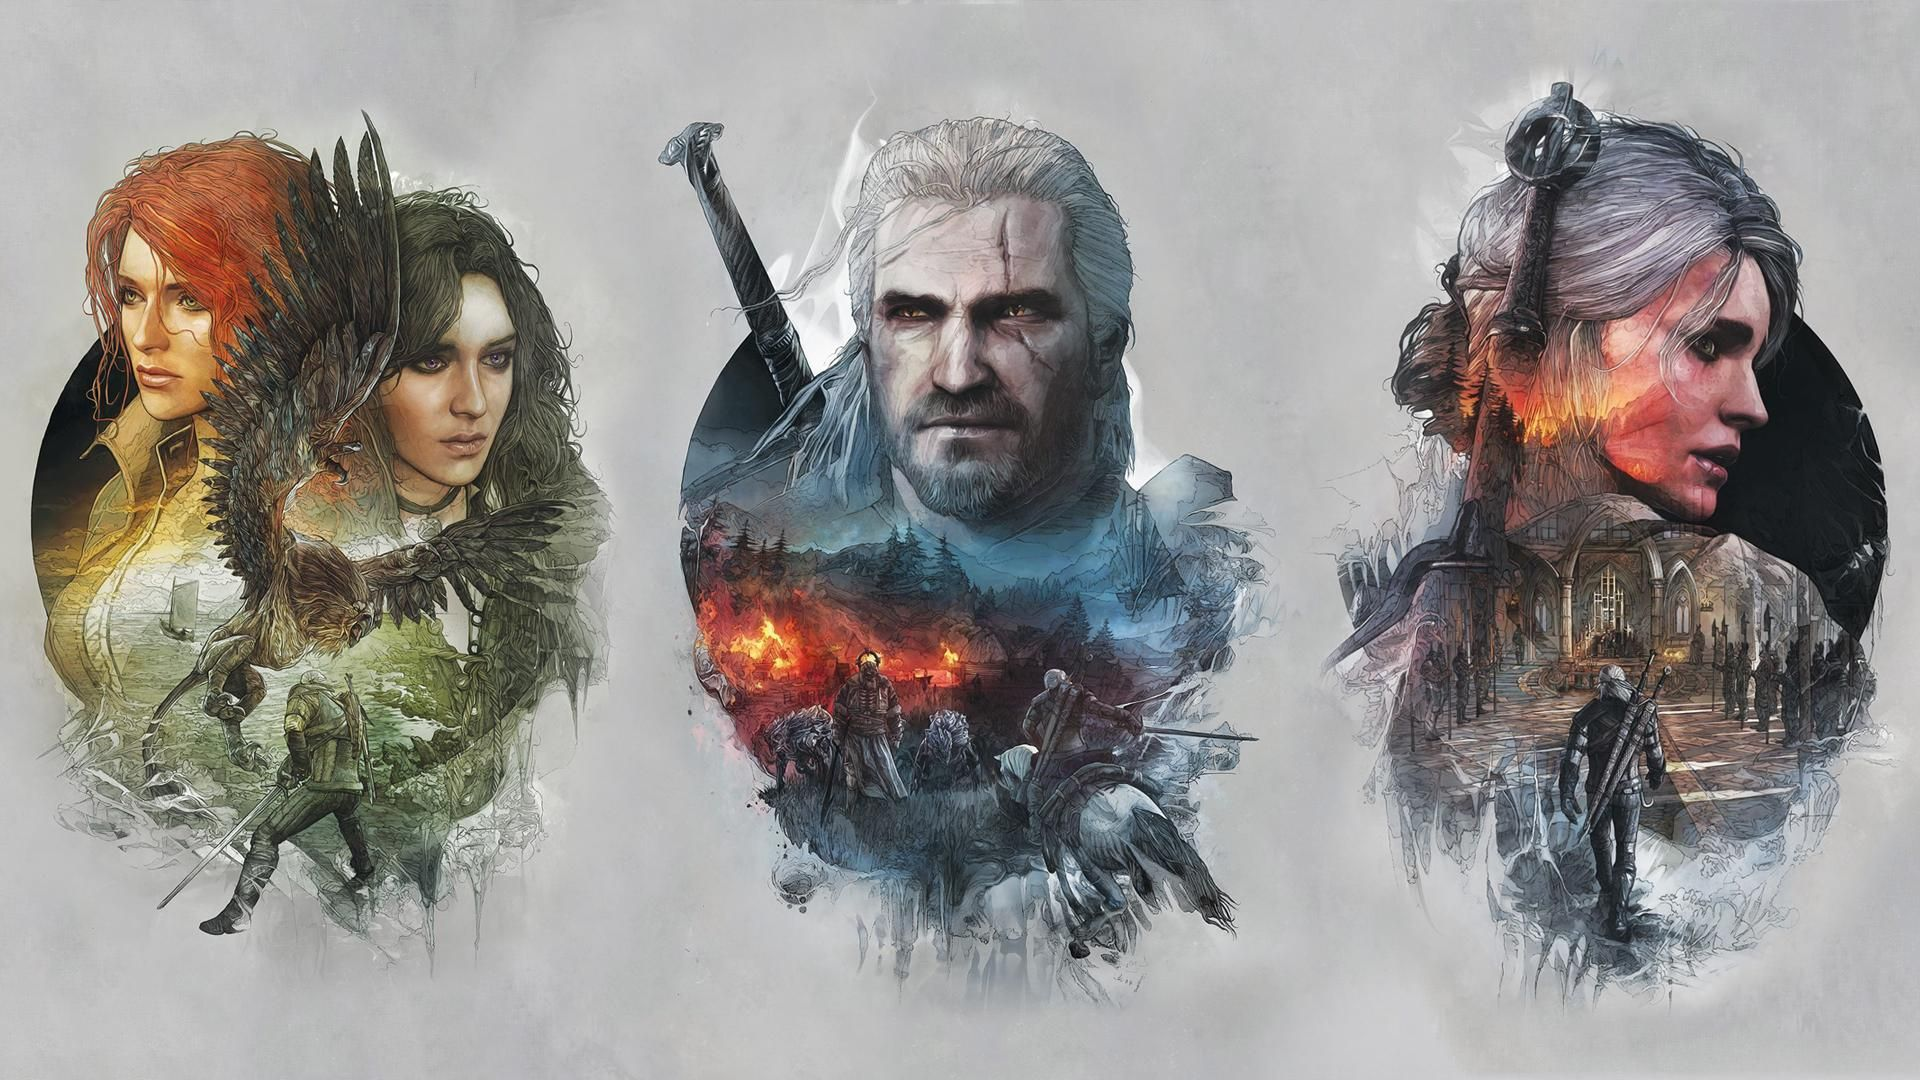 the witcher 3 steel book cover | wallpaper clicker | pinterest